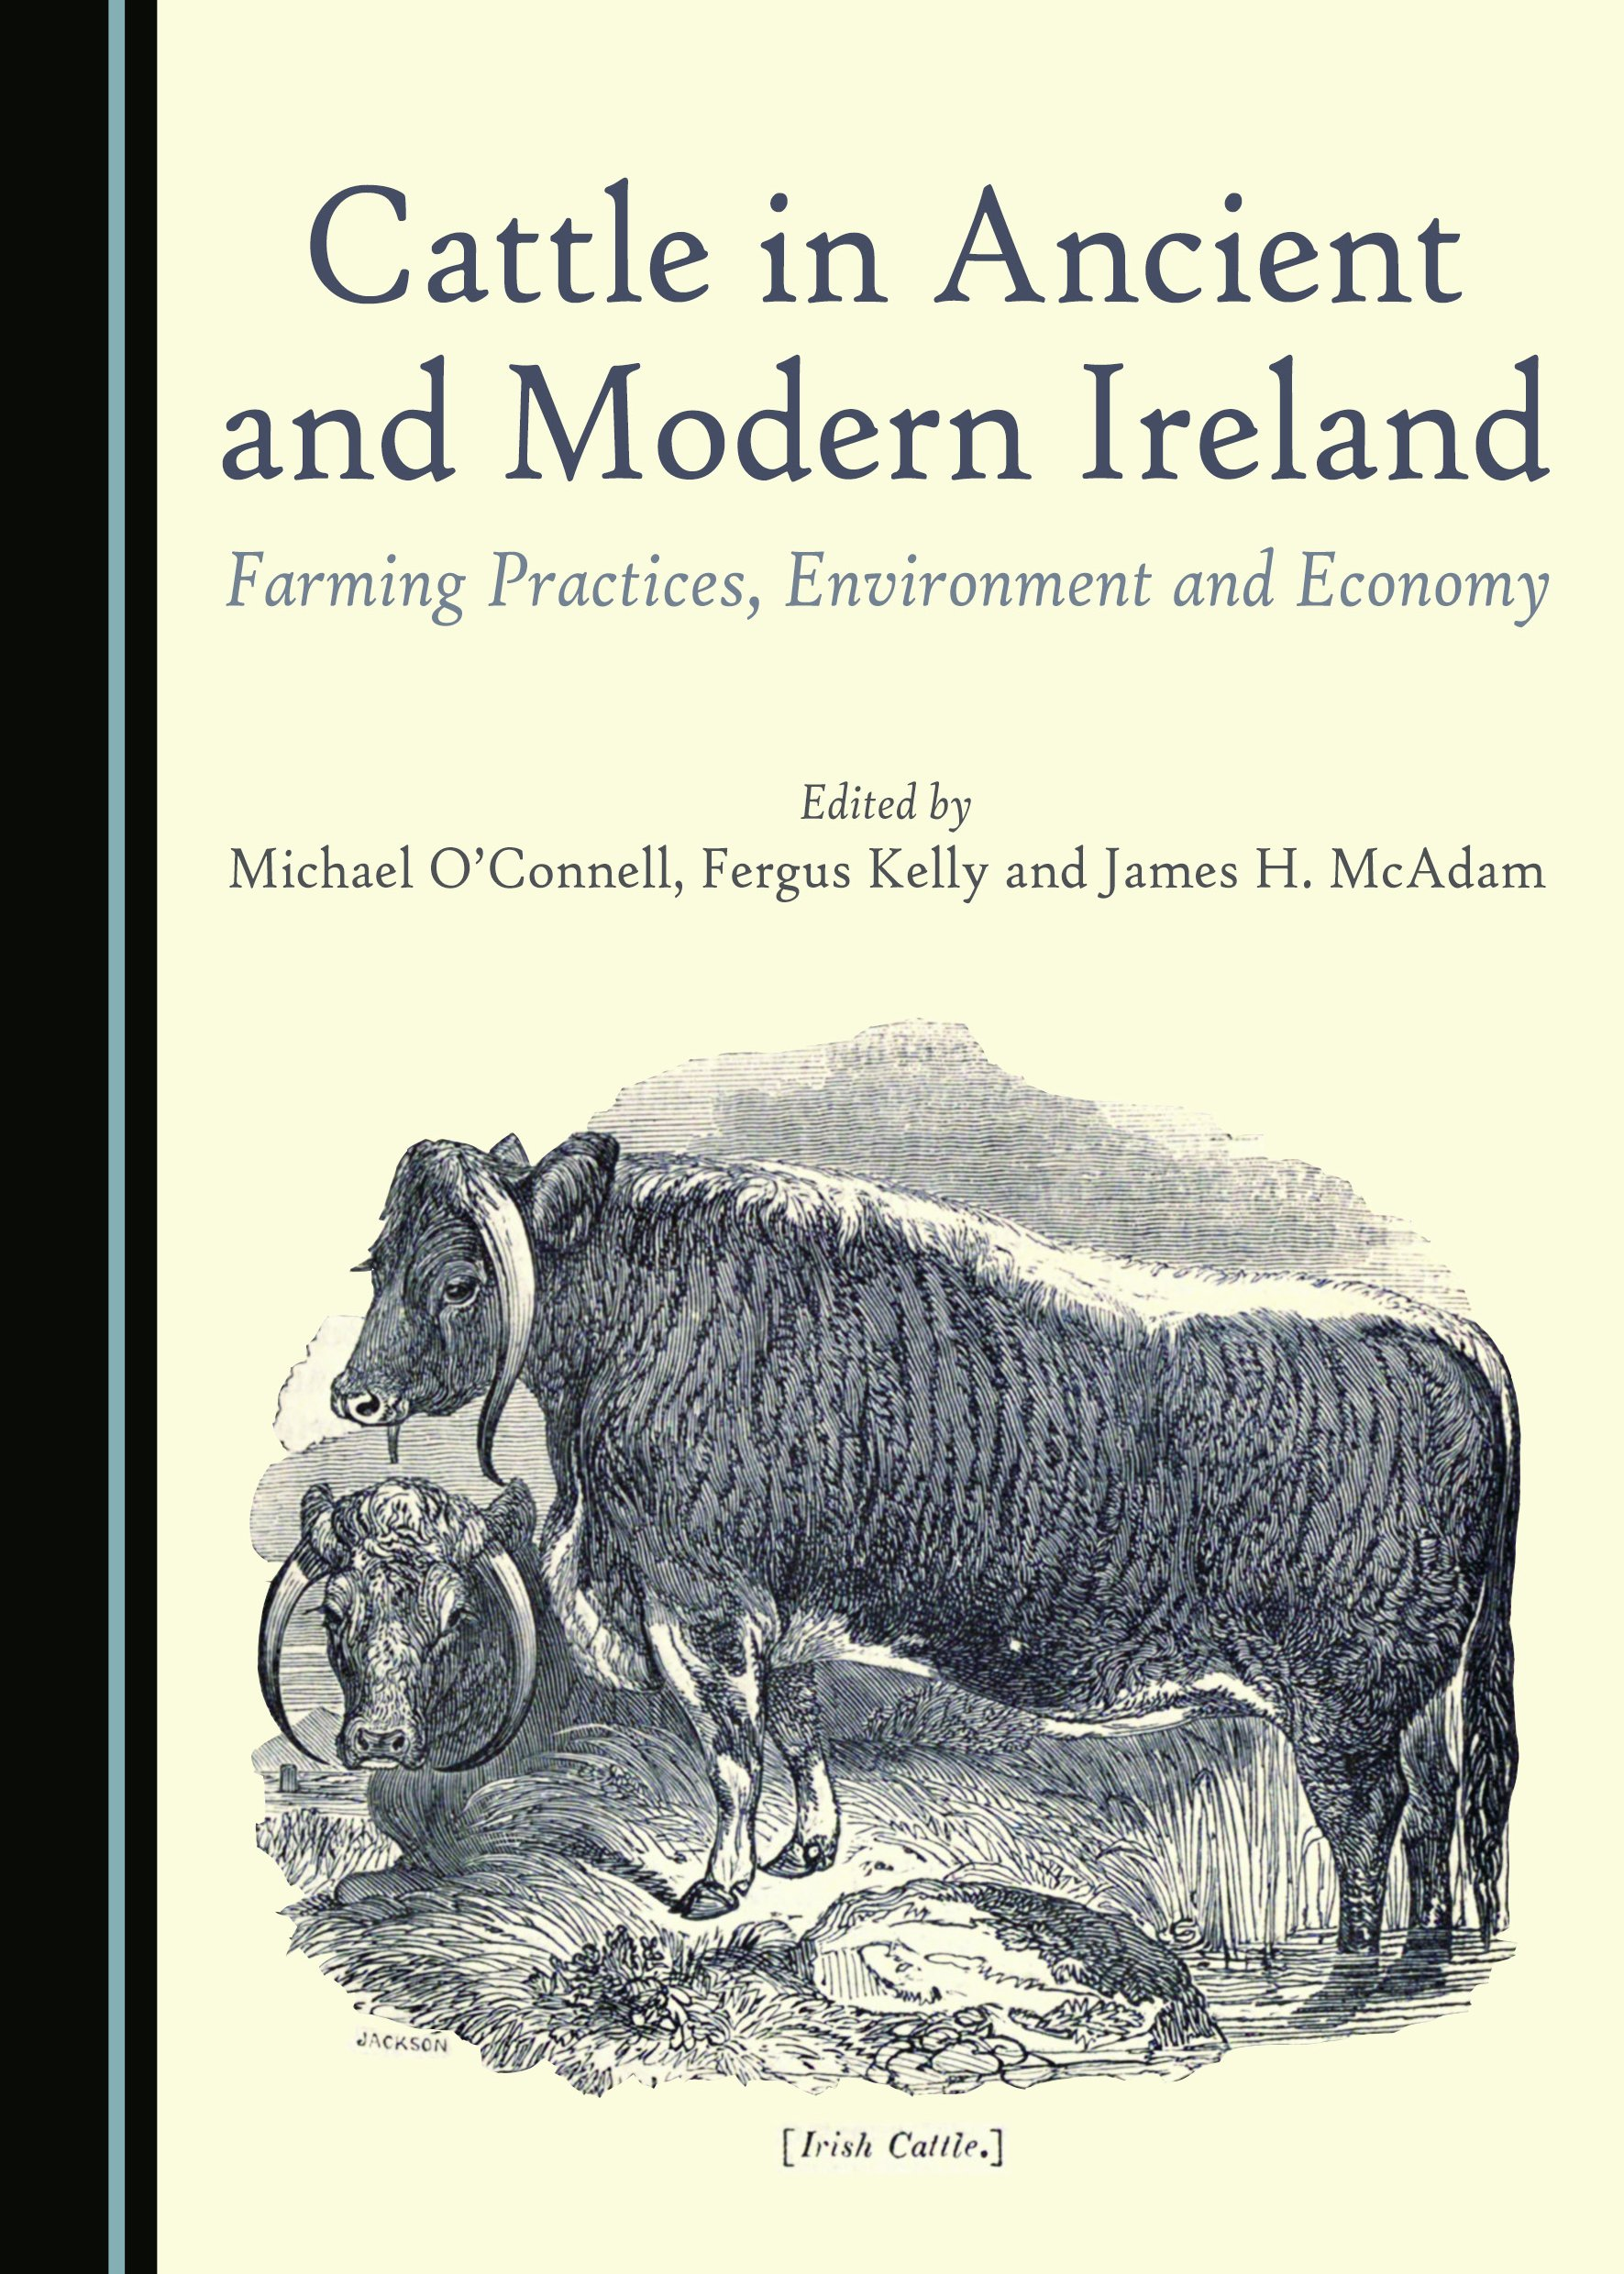 Cattle in Ancient and Modern Ireland: Farming Practices, Environment and Economy